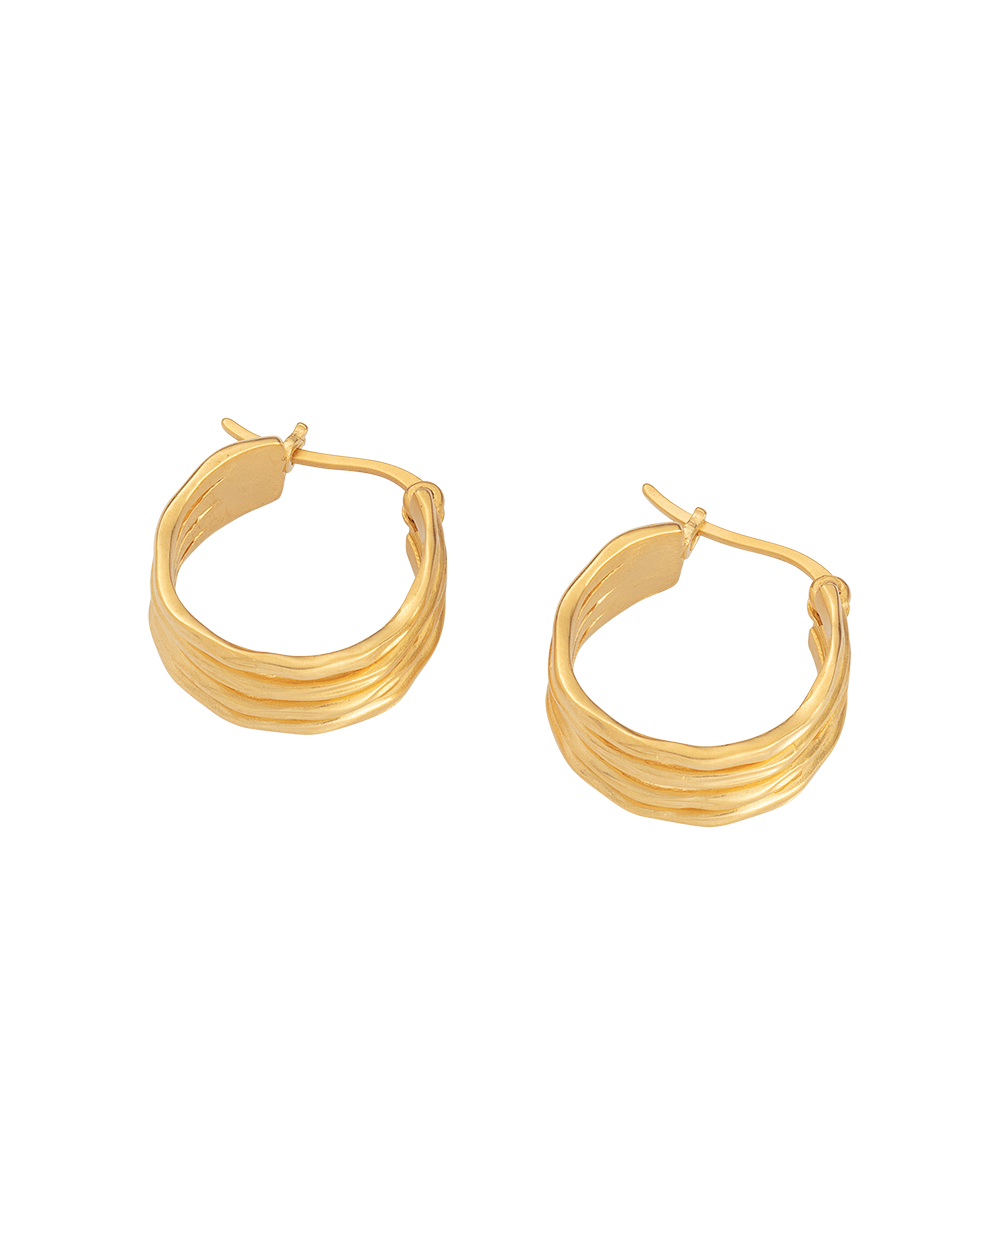 BOTANICA HOOPS (18K-GOLD-PLATED) - SIDE